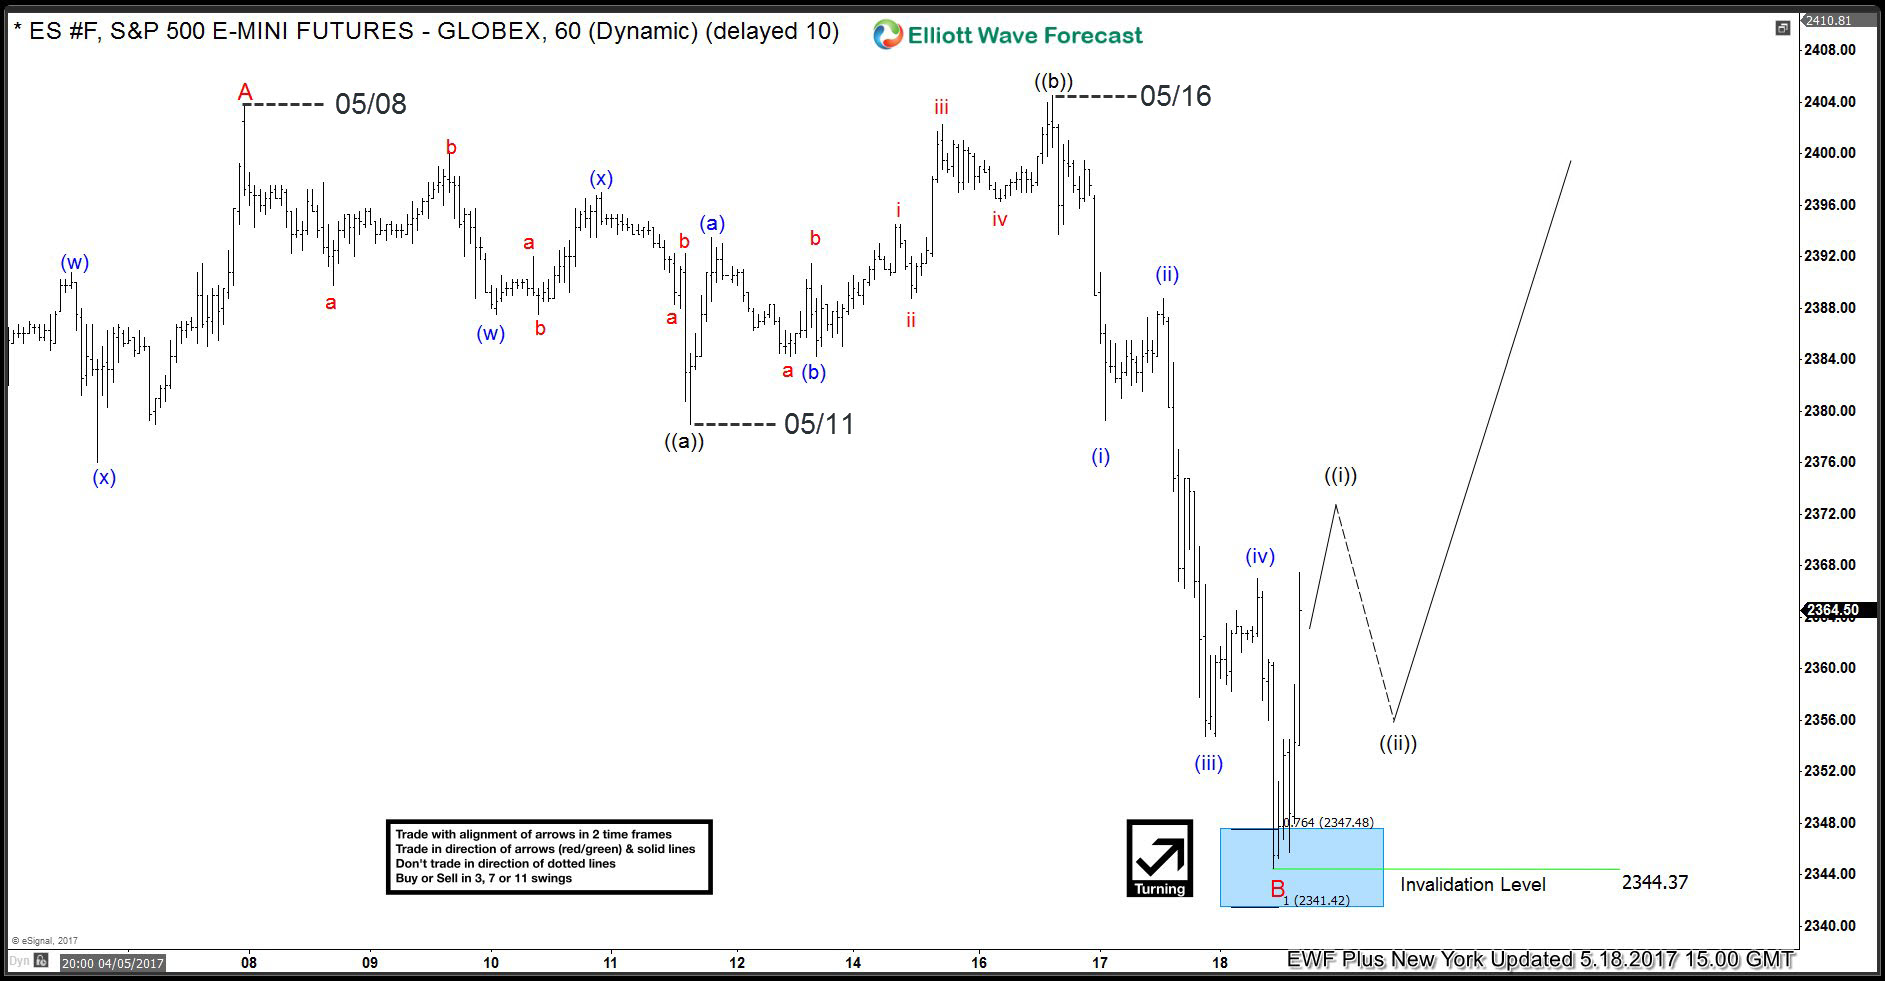 S&P 500 Elliott Wave 1 Hour